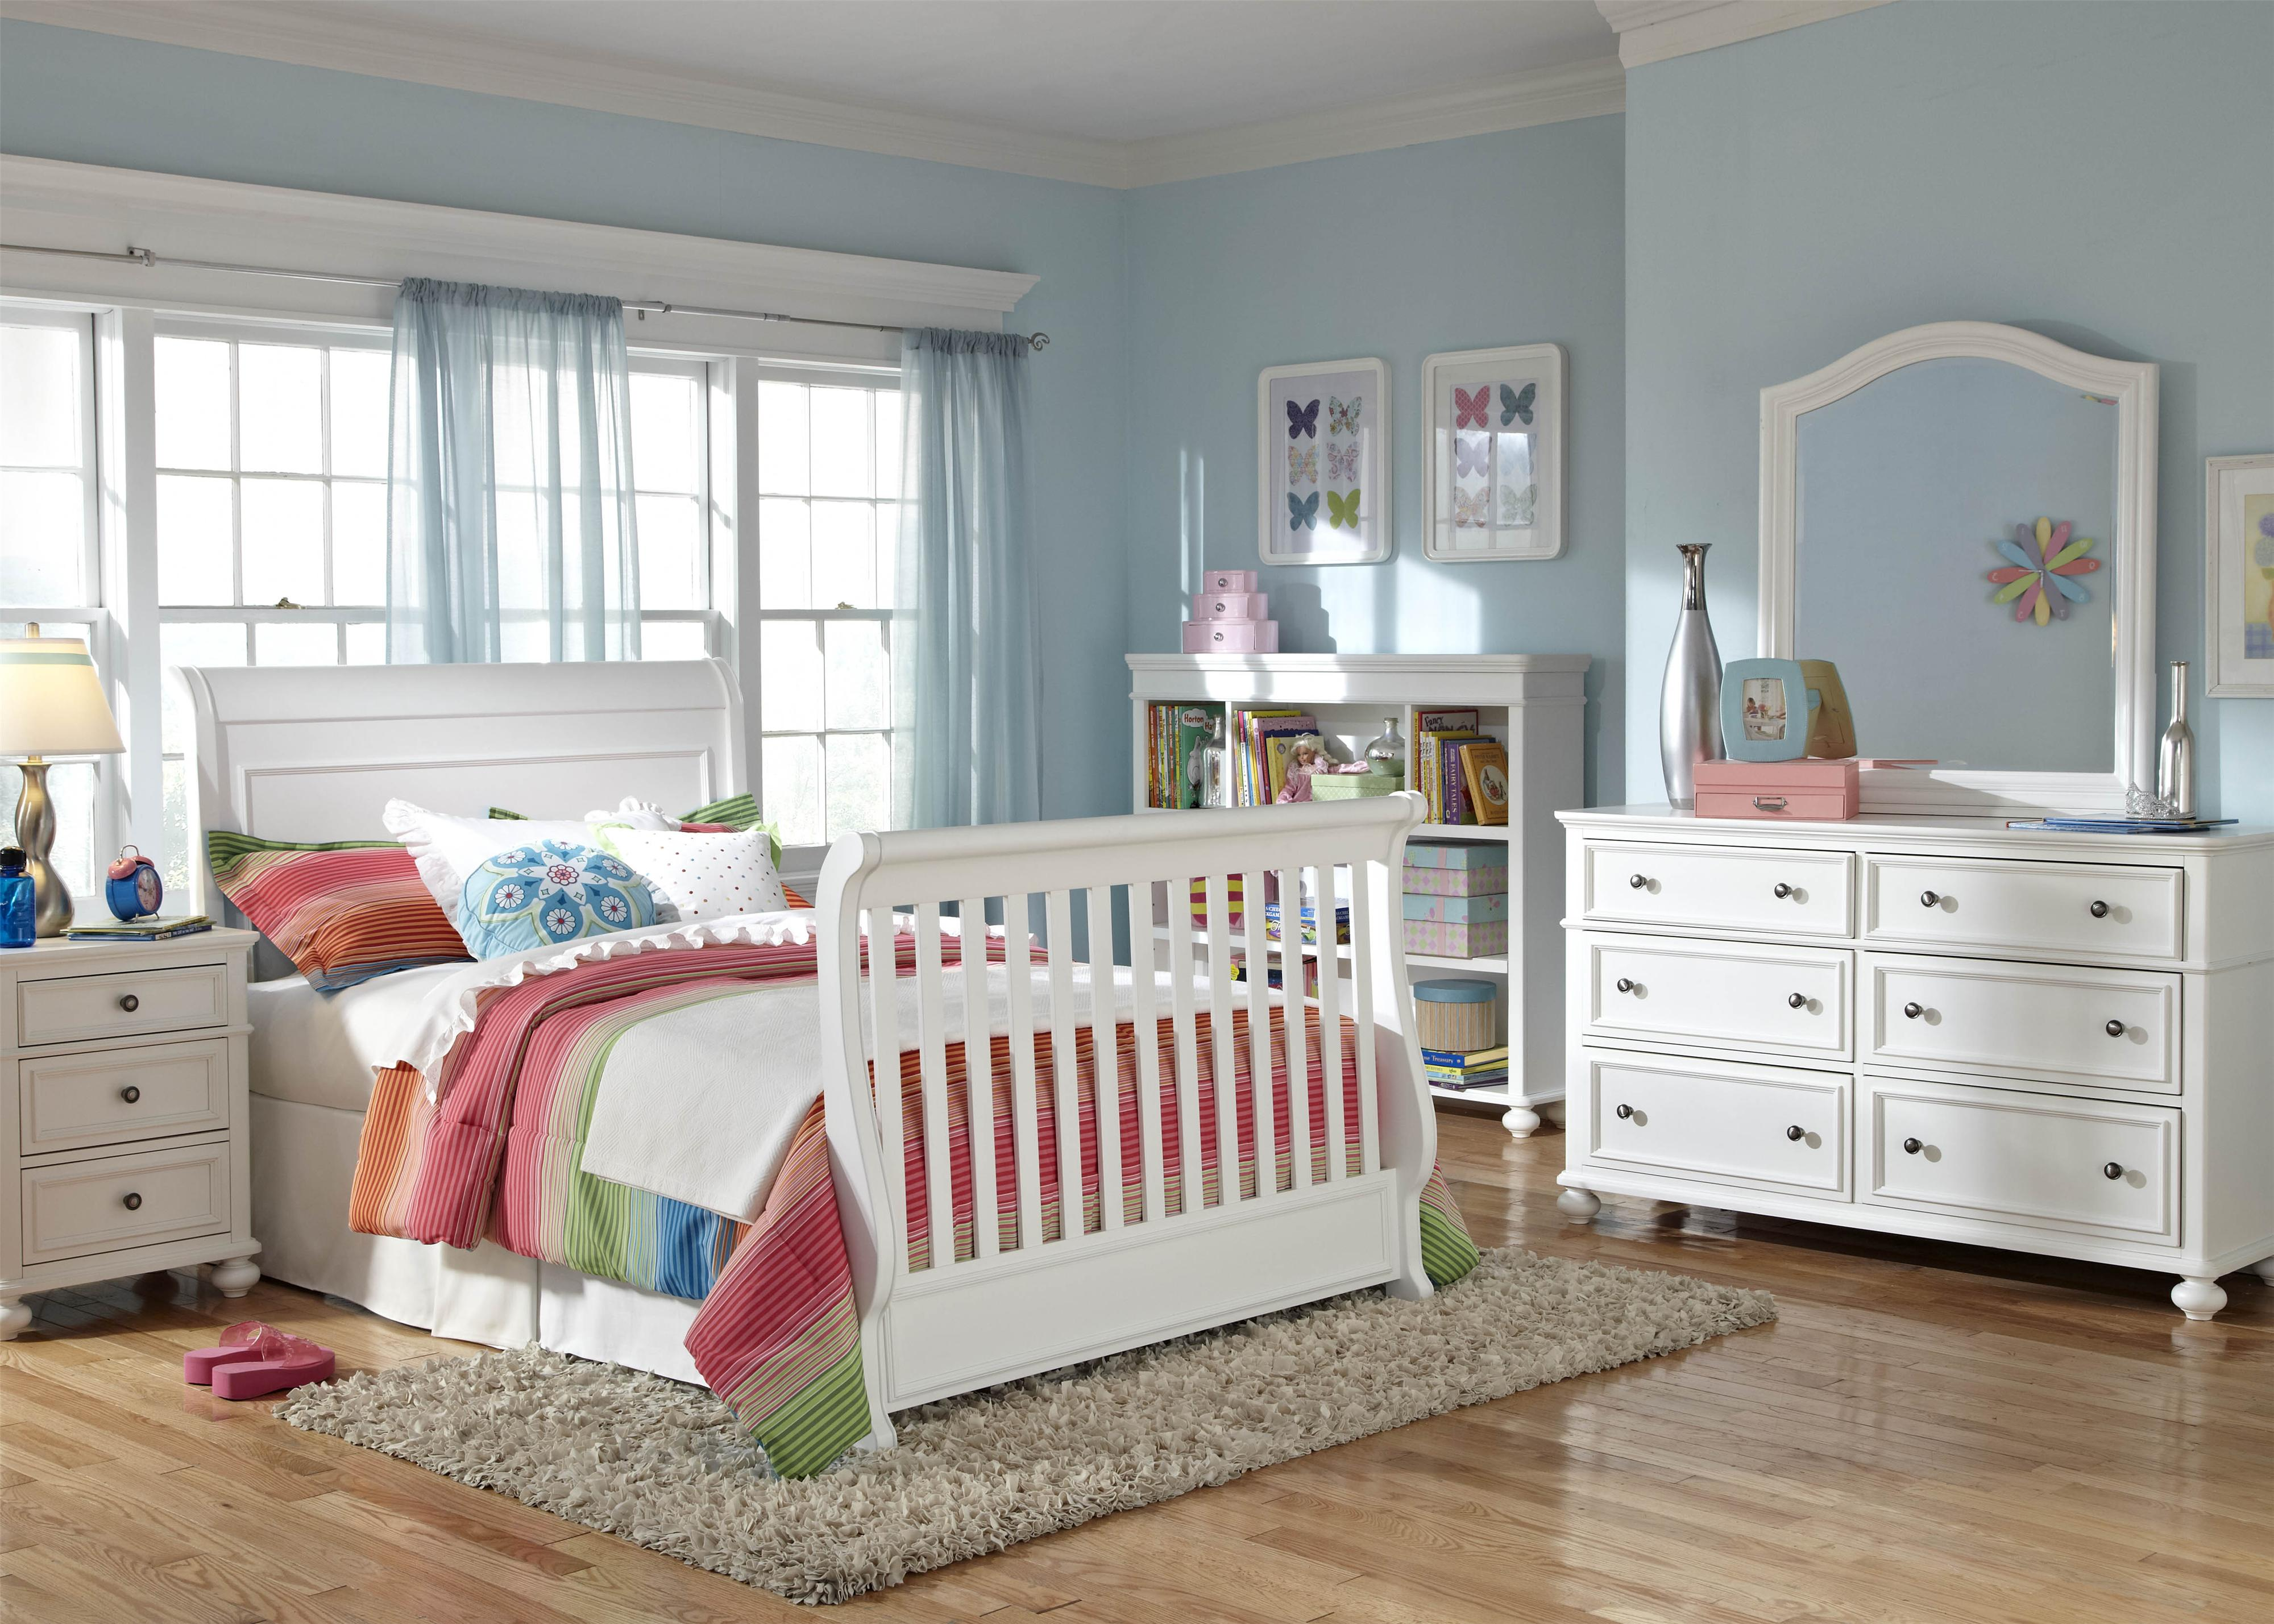 d627625ecd66 Madison (2830) by Legacy Classic Kids - Powell's Furniture and Mattress - Legacy  Classic Kids Madison Dealer